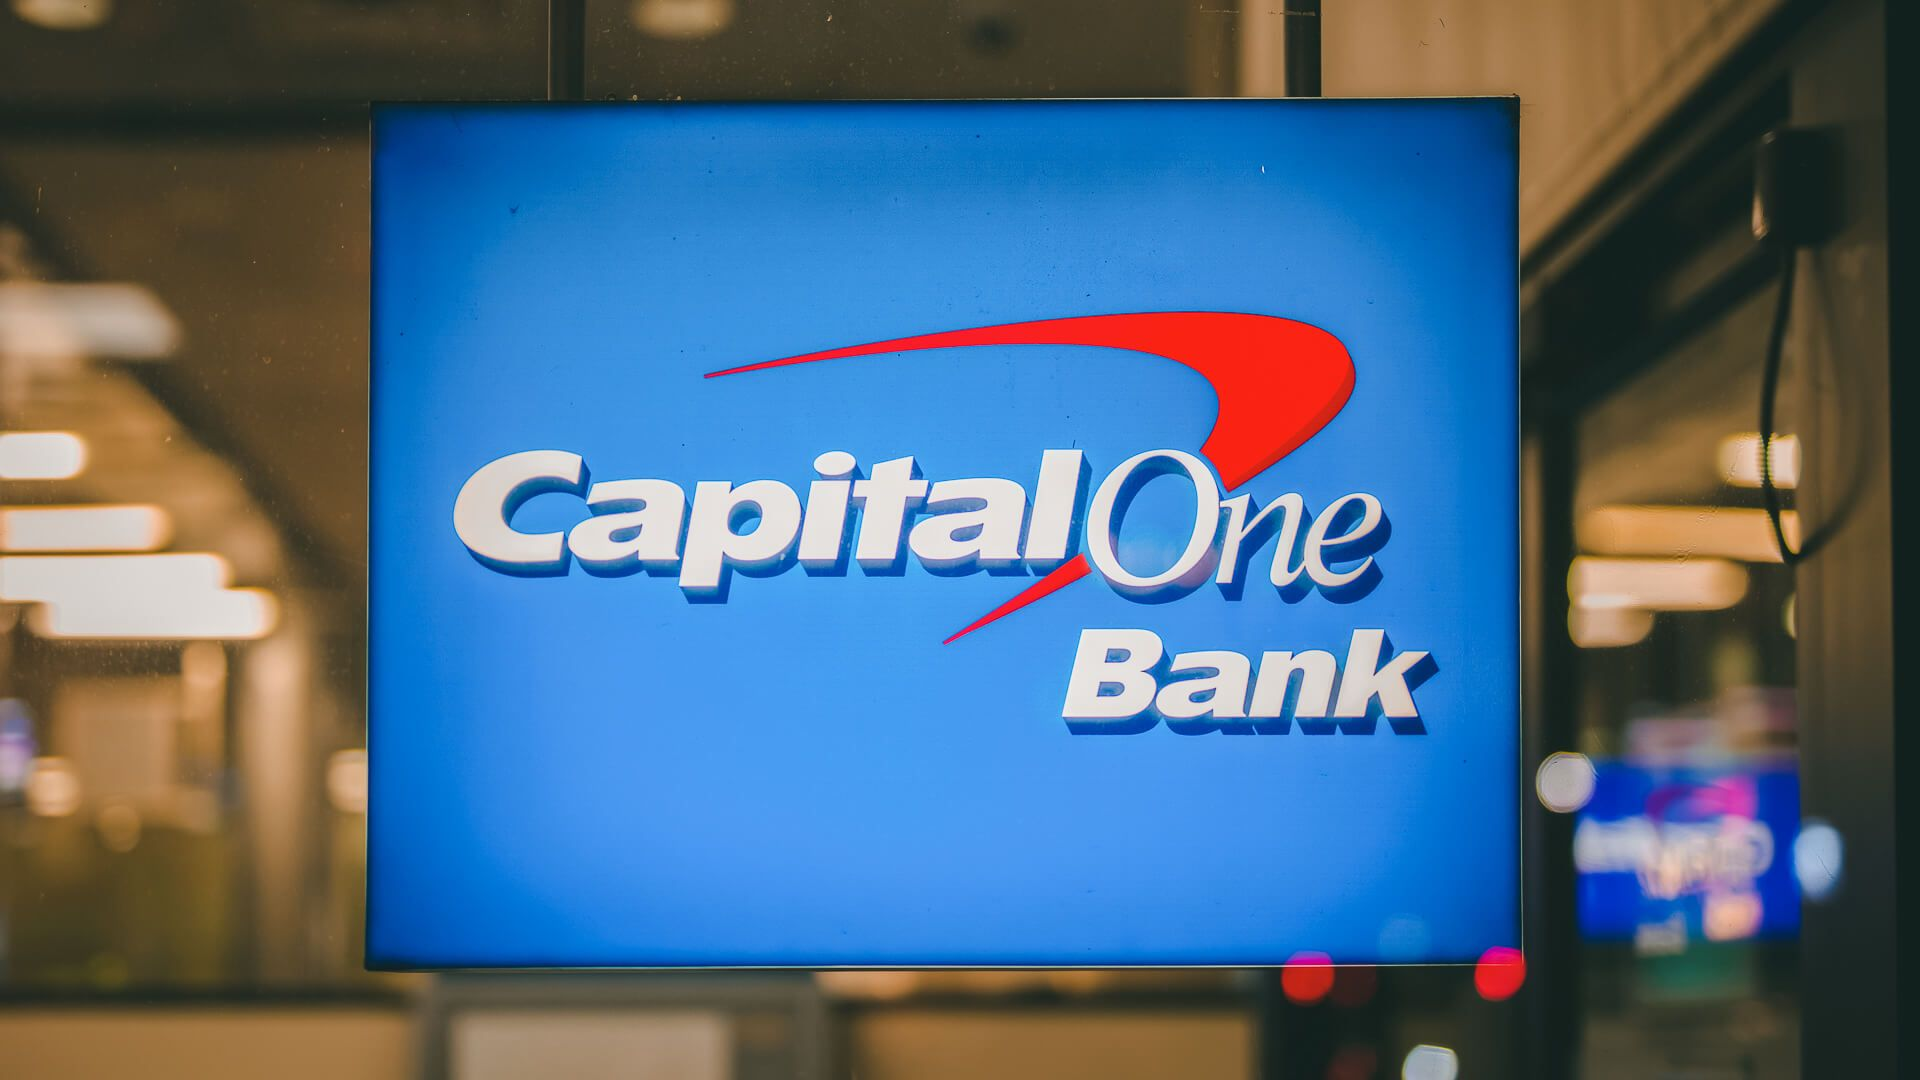 Capital One Hours: What Time Does Capital One Open/Close